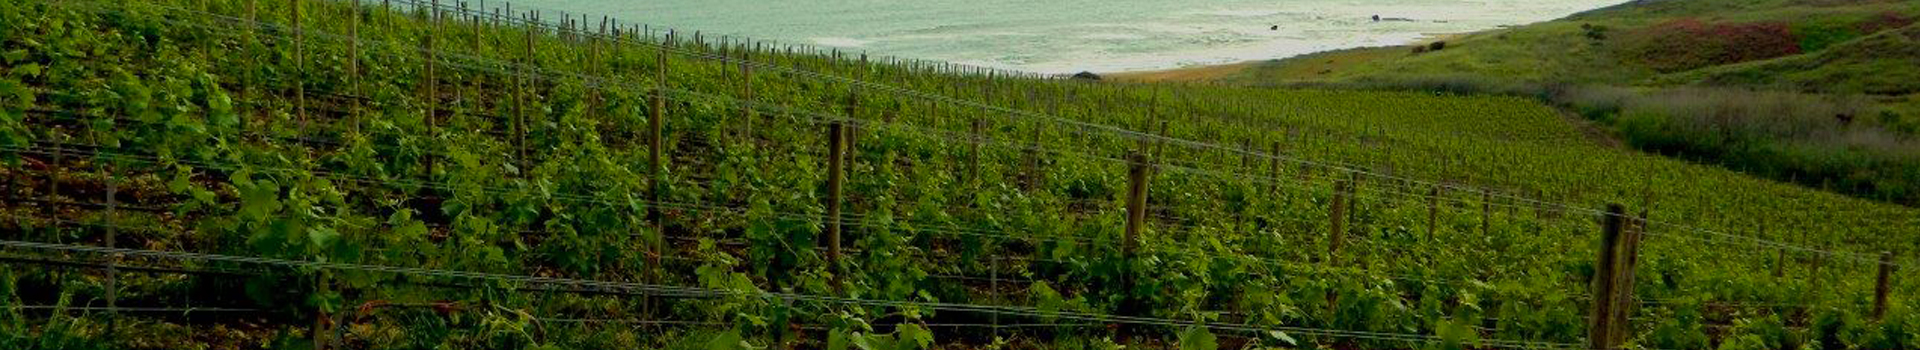 GURRA DI MARETHE ENCHANTMENT OF A VINEYARD BY THE SEA